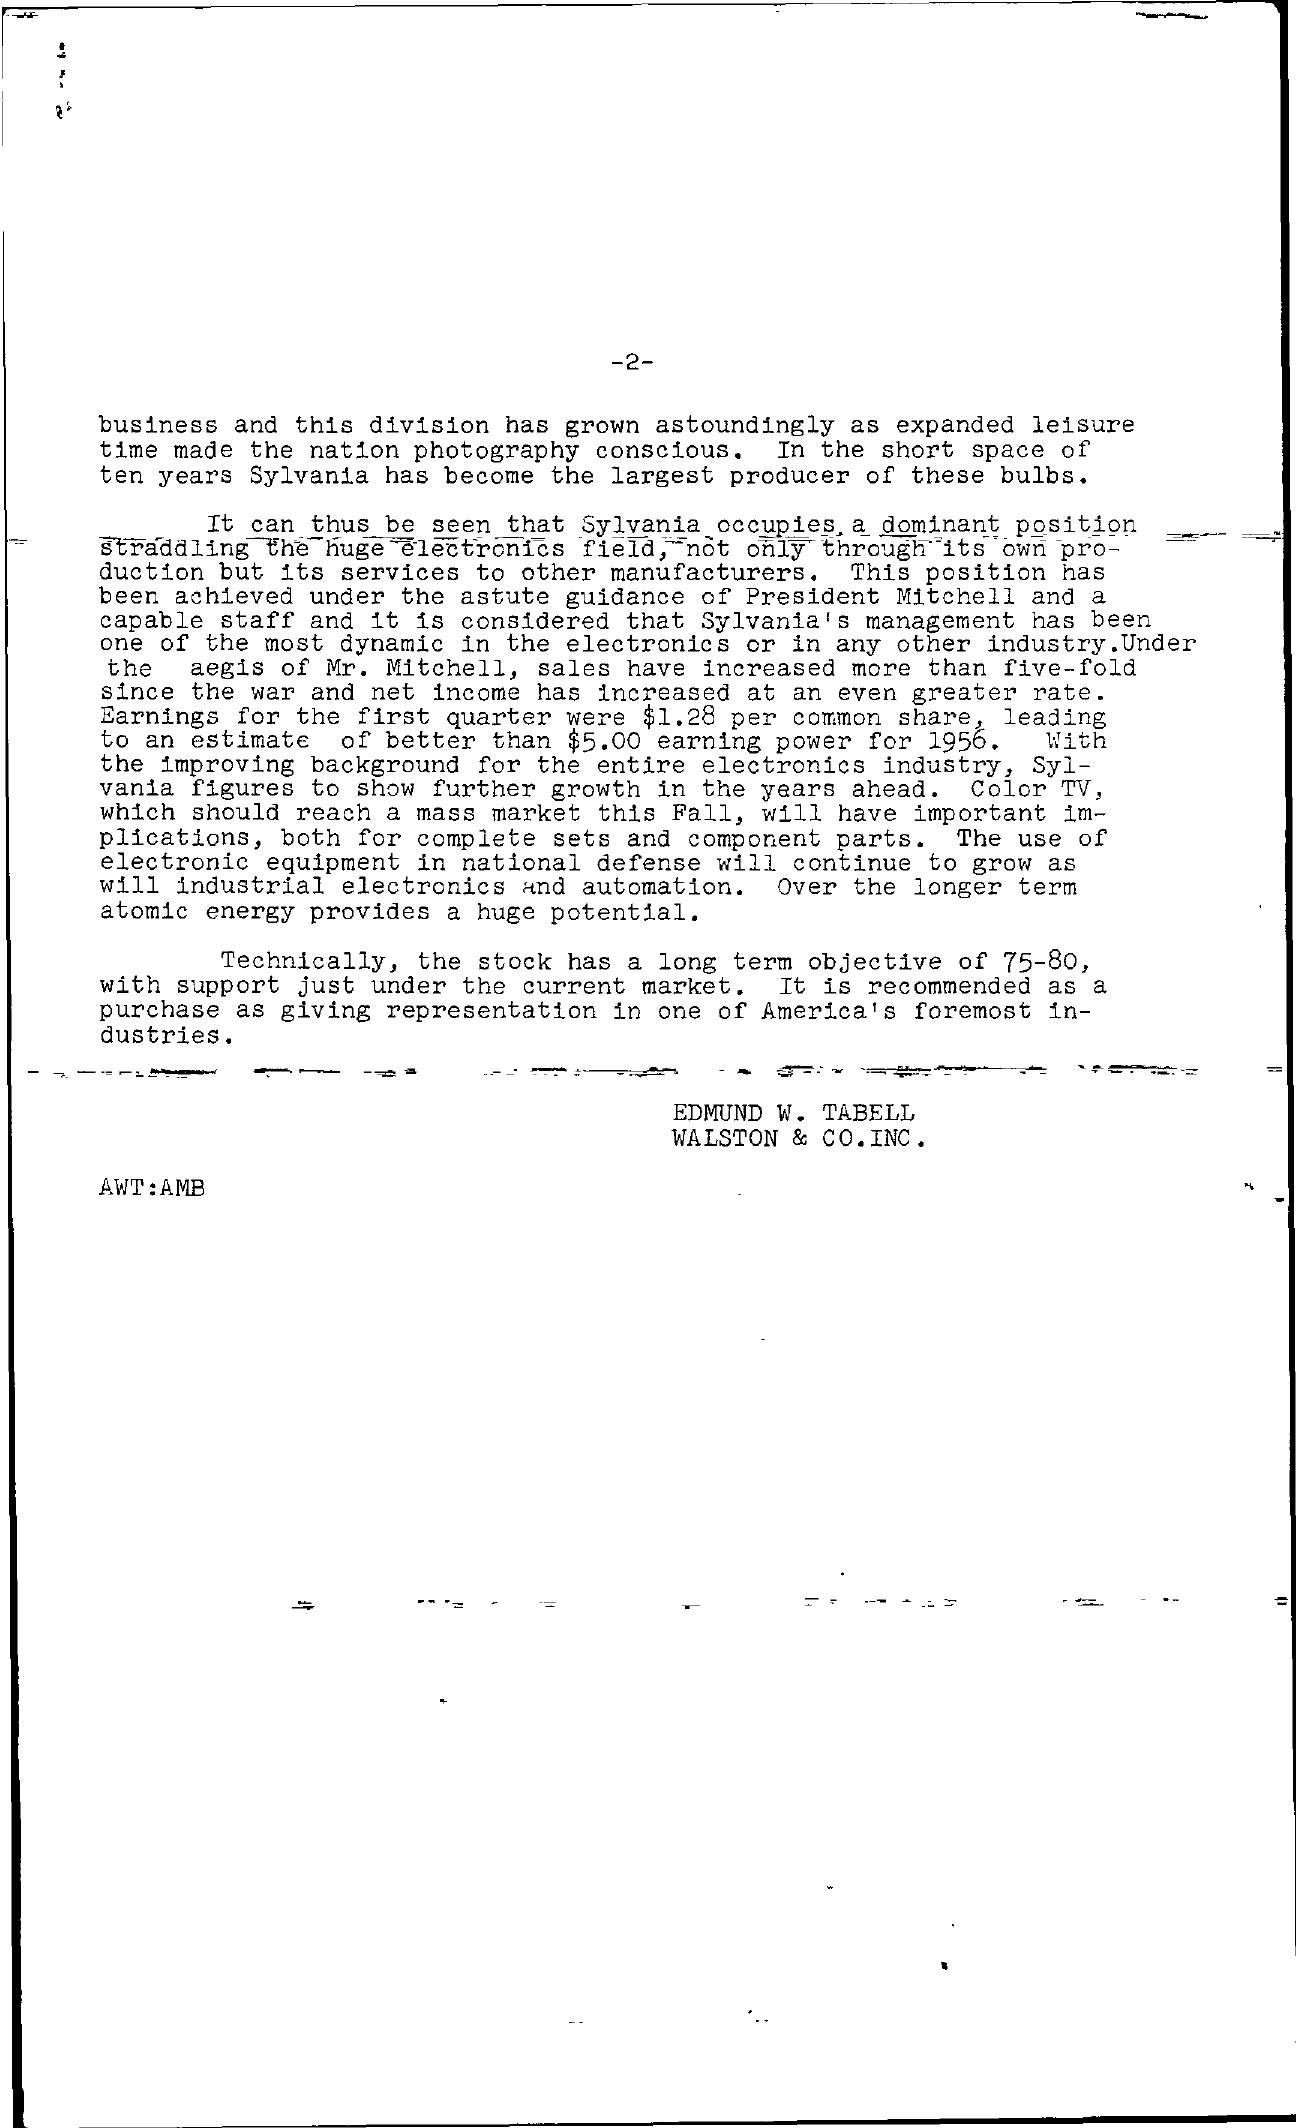 Tabell's Market Letter - June 22, 1956 page 2